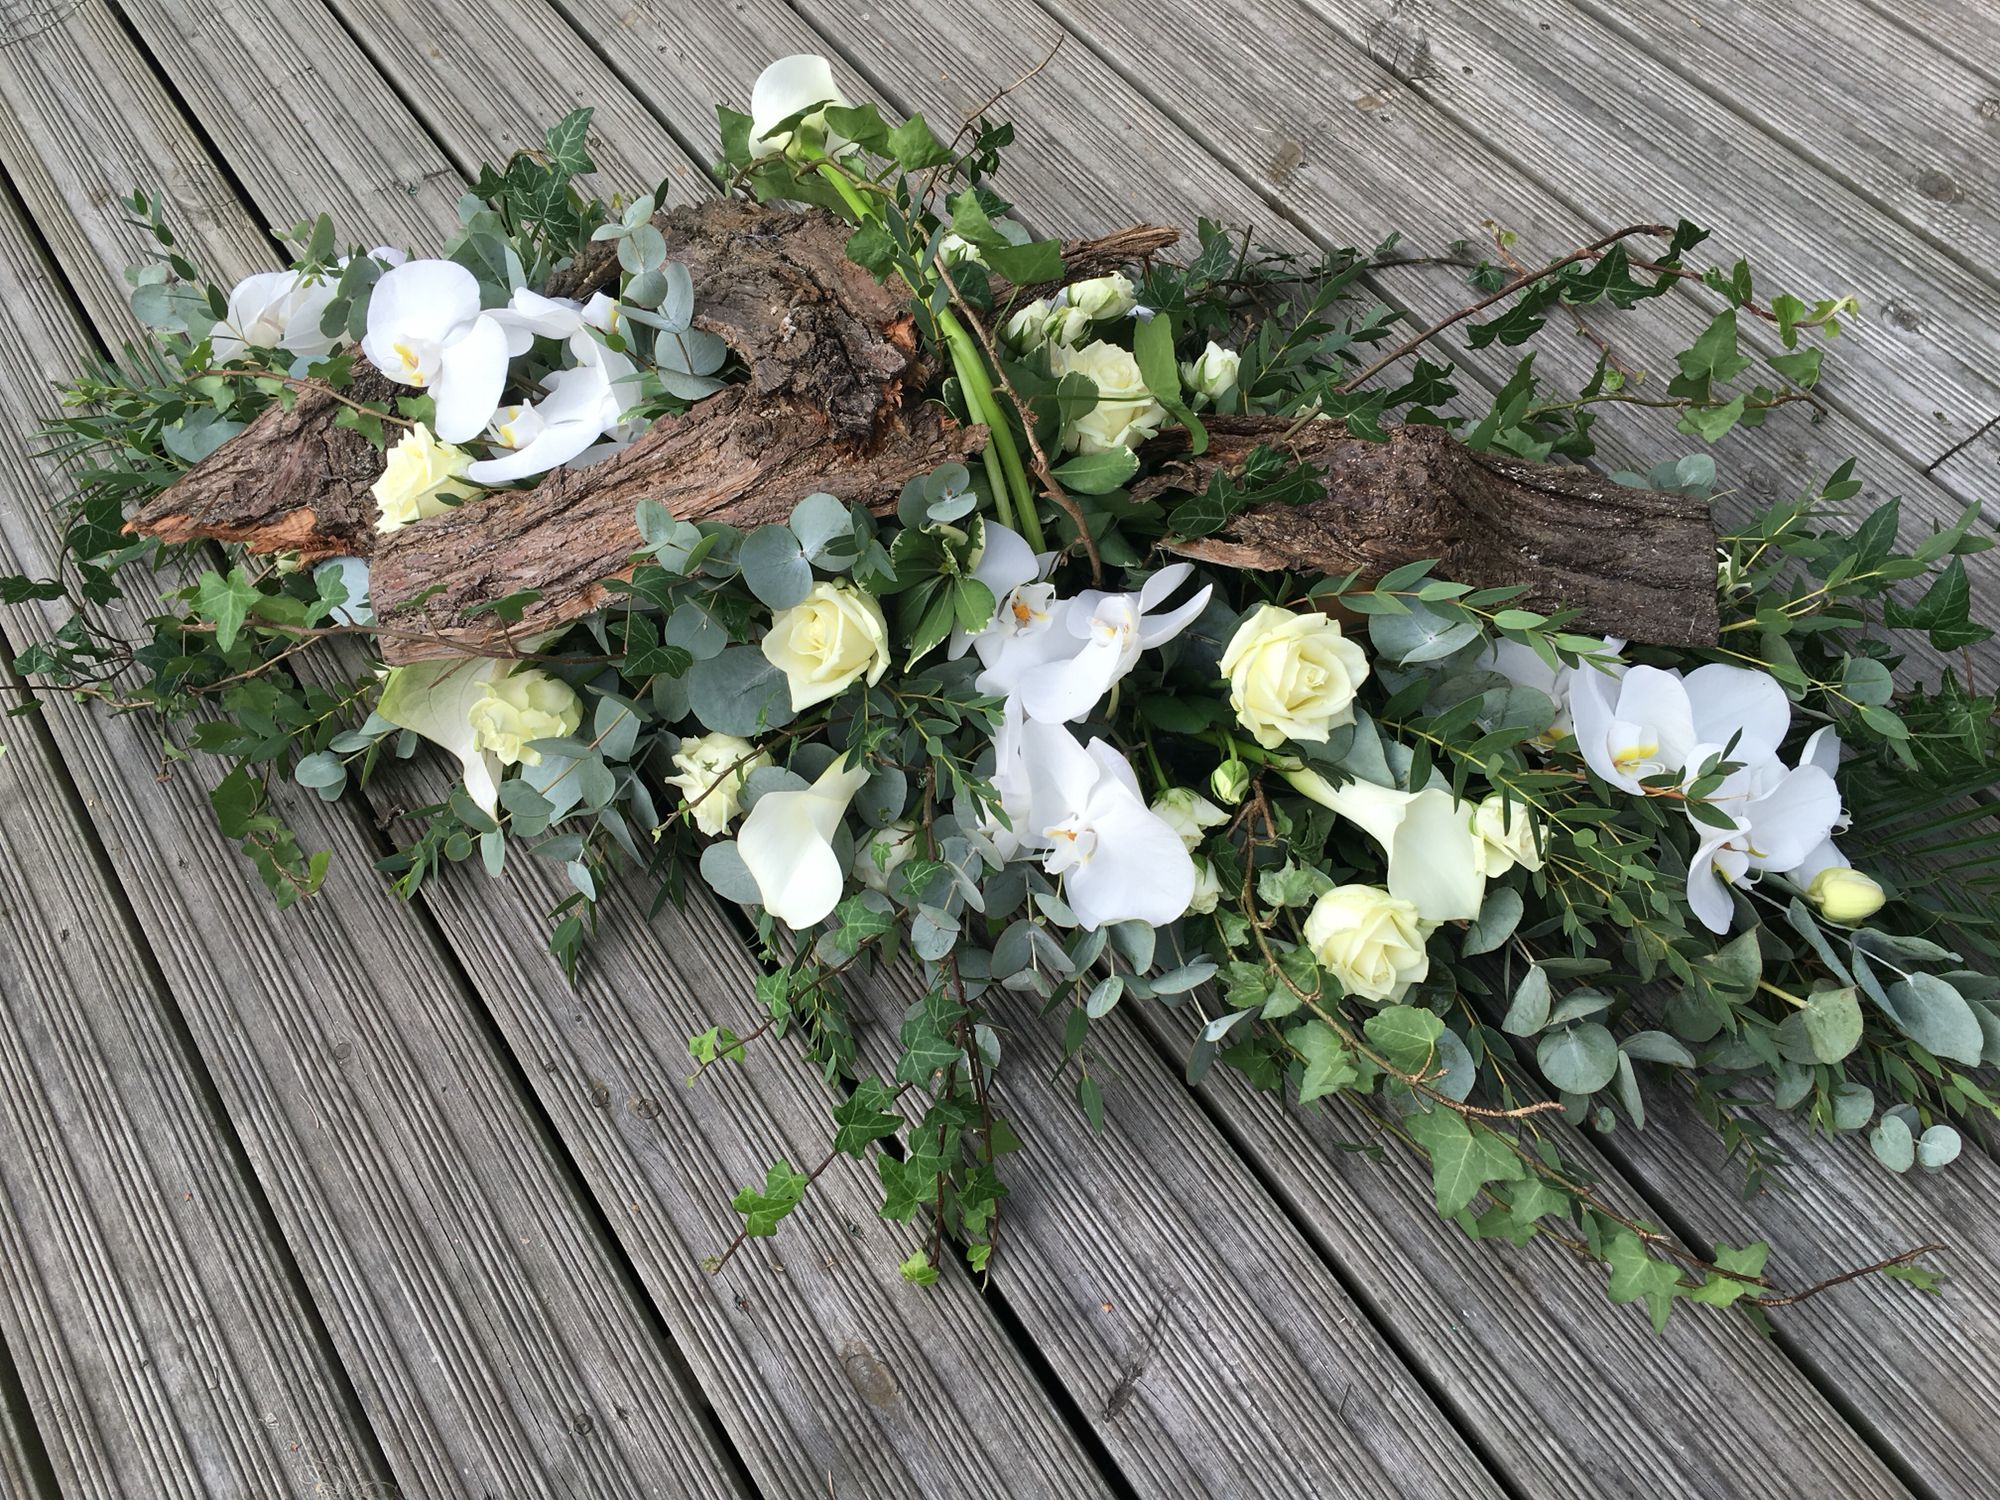 33 best casket sprays images on pinterest funeral flowers woodland flowers rustic funeral flowers thefloralartstudio izmirmasajfo Choice Image